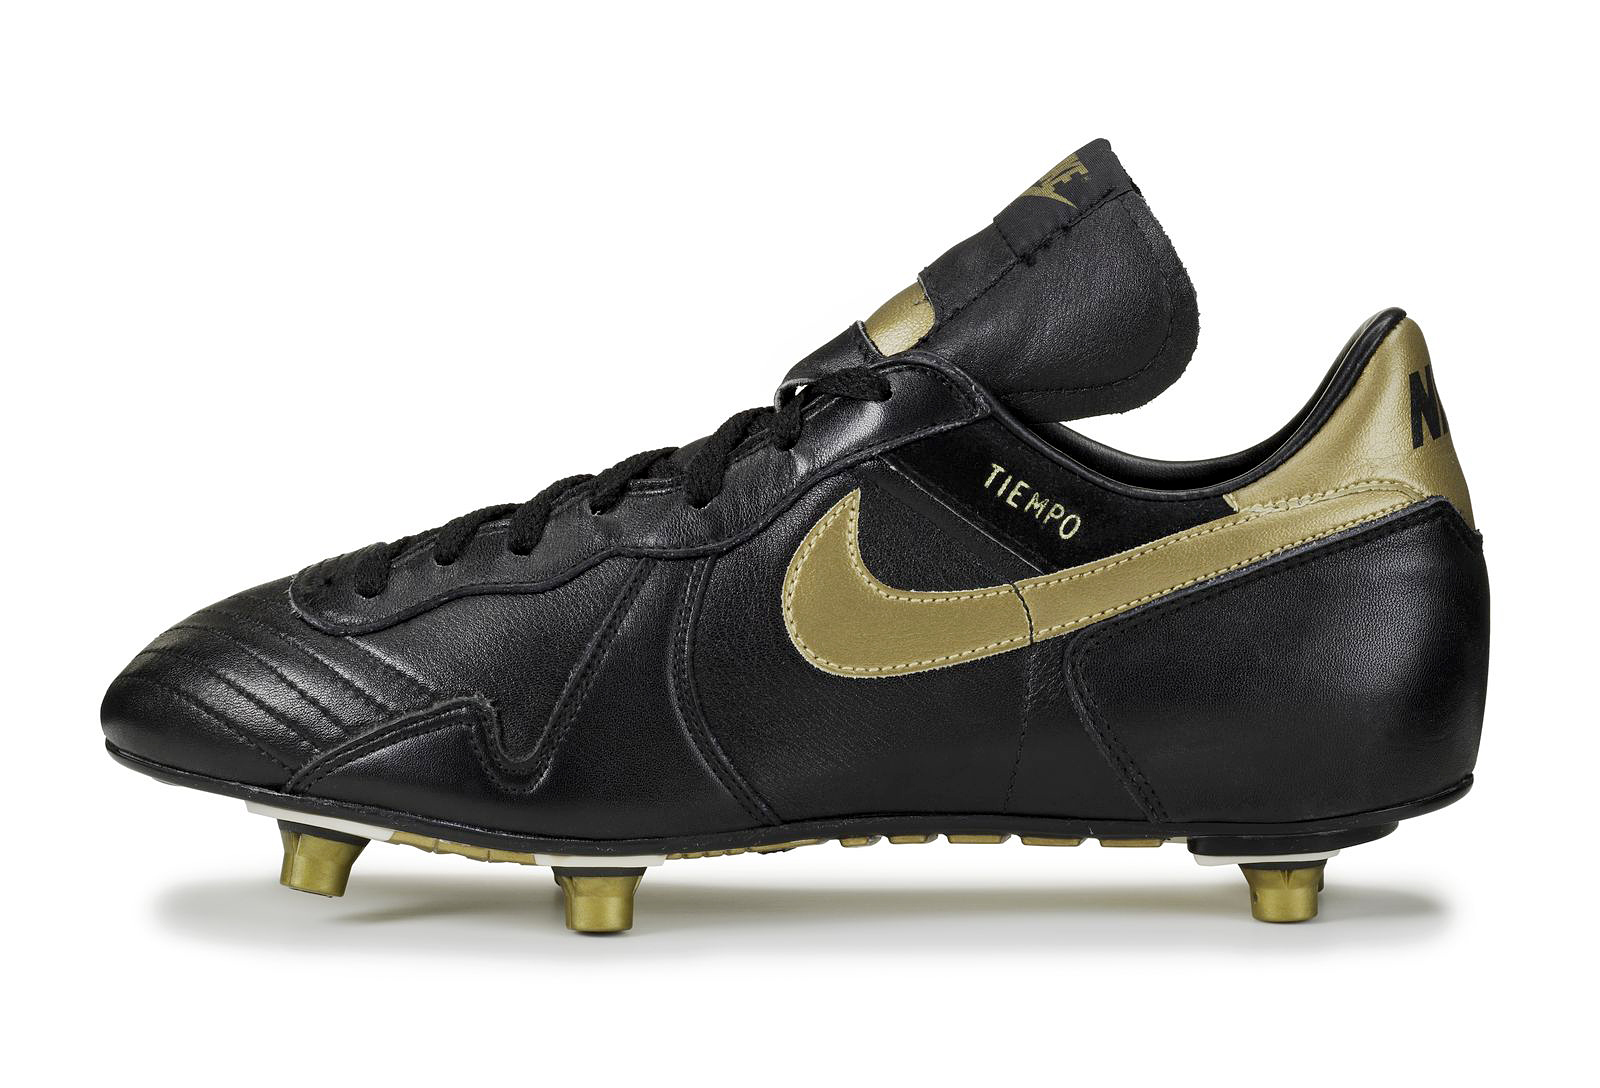 Nike Tiempo Shoes Amazon